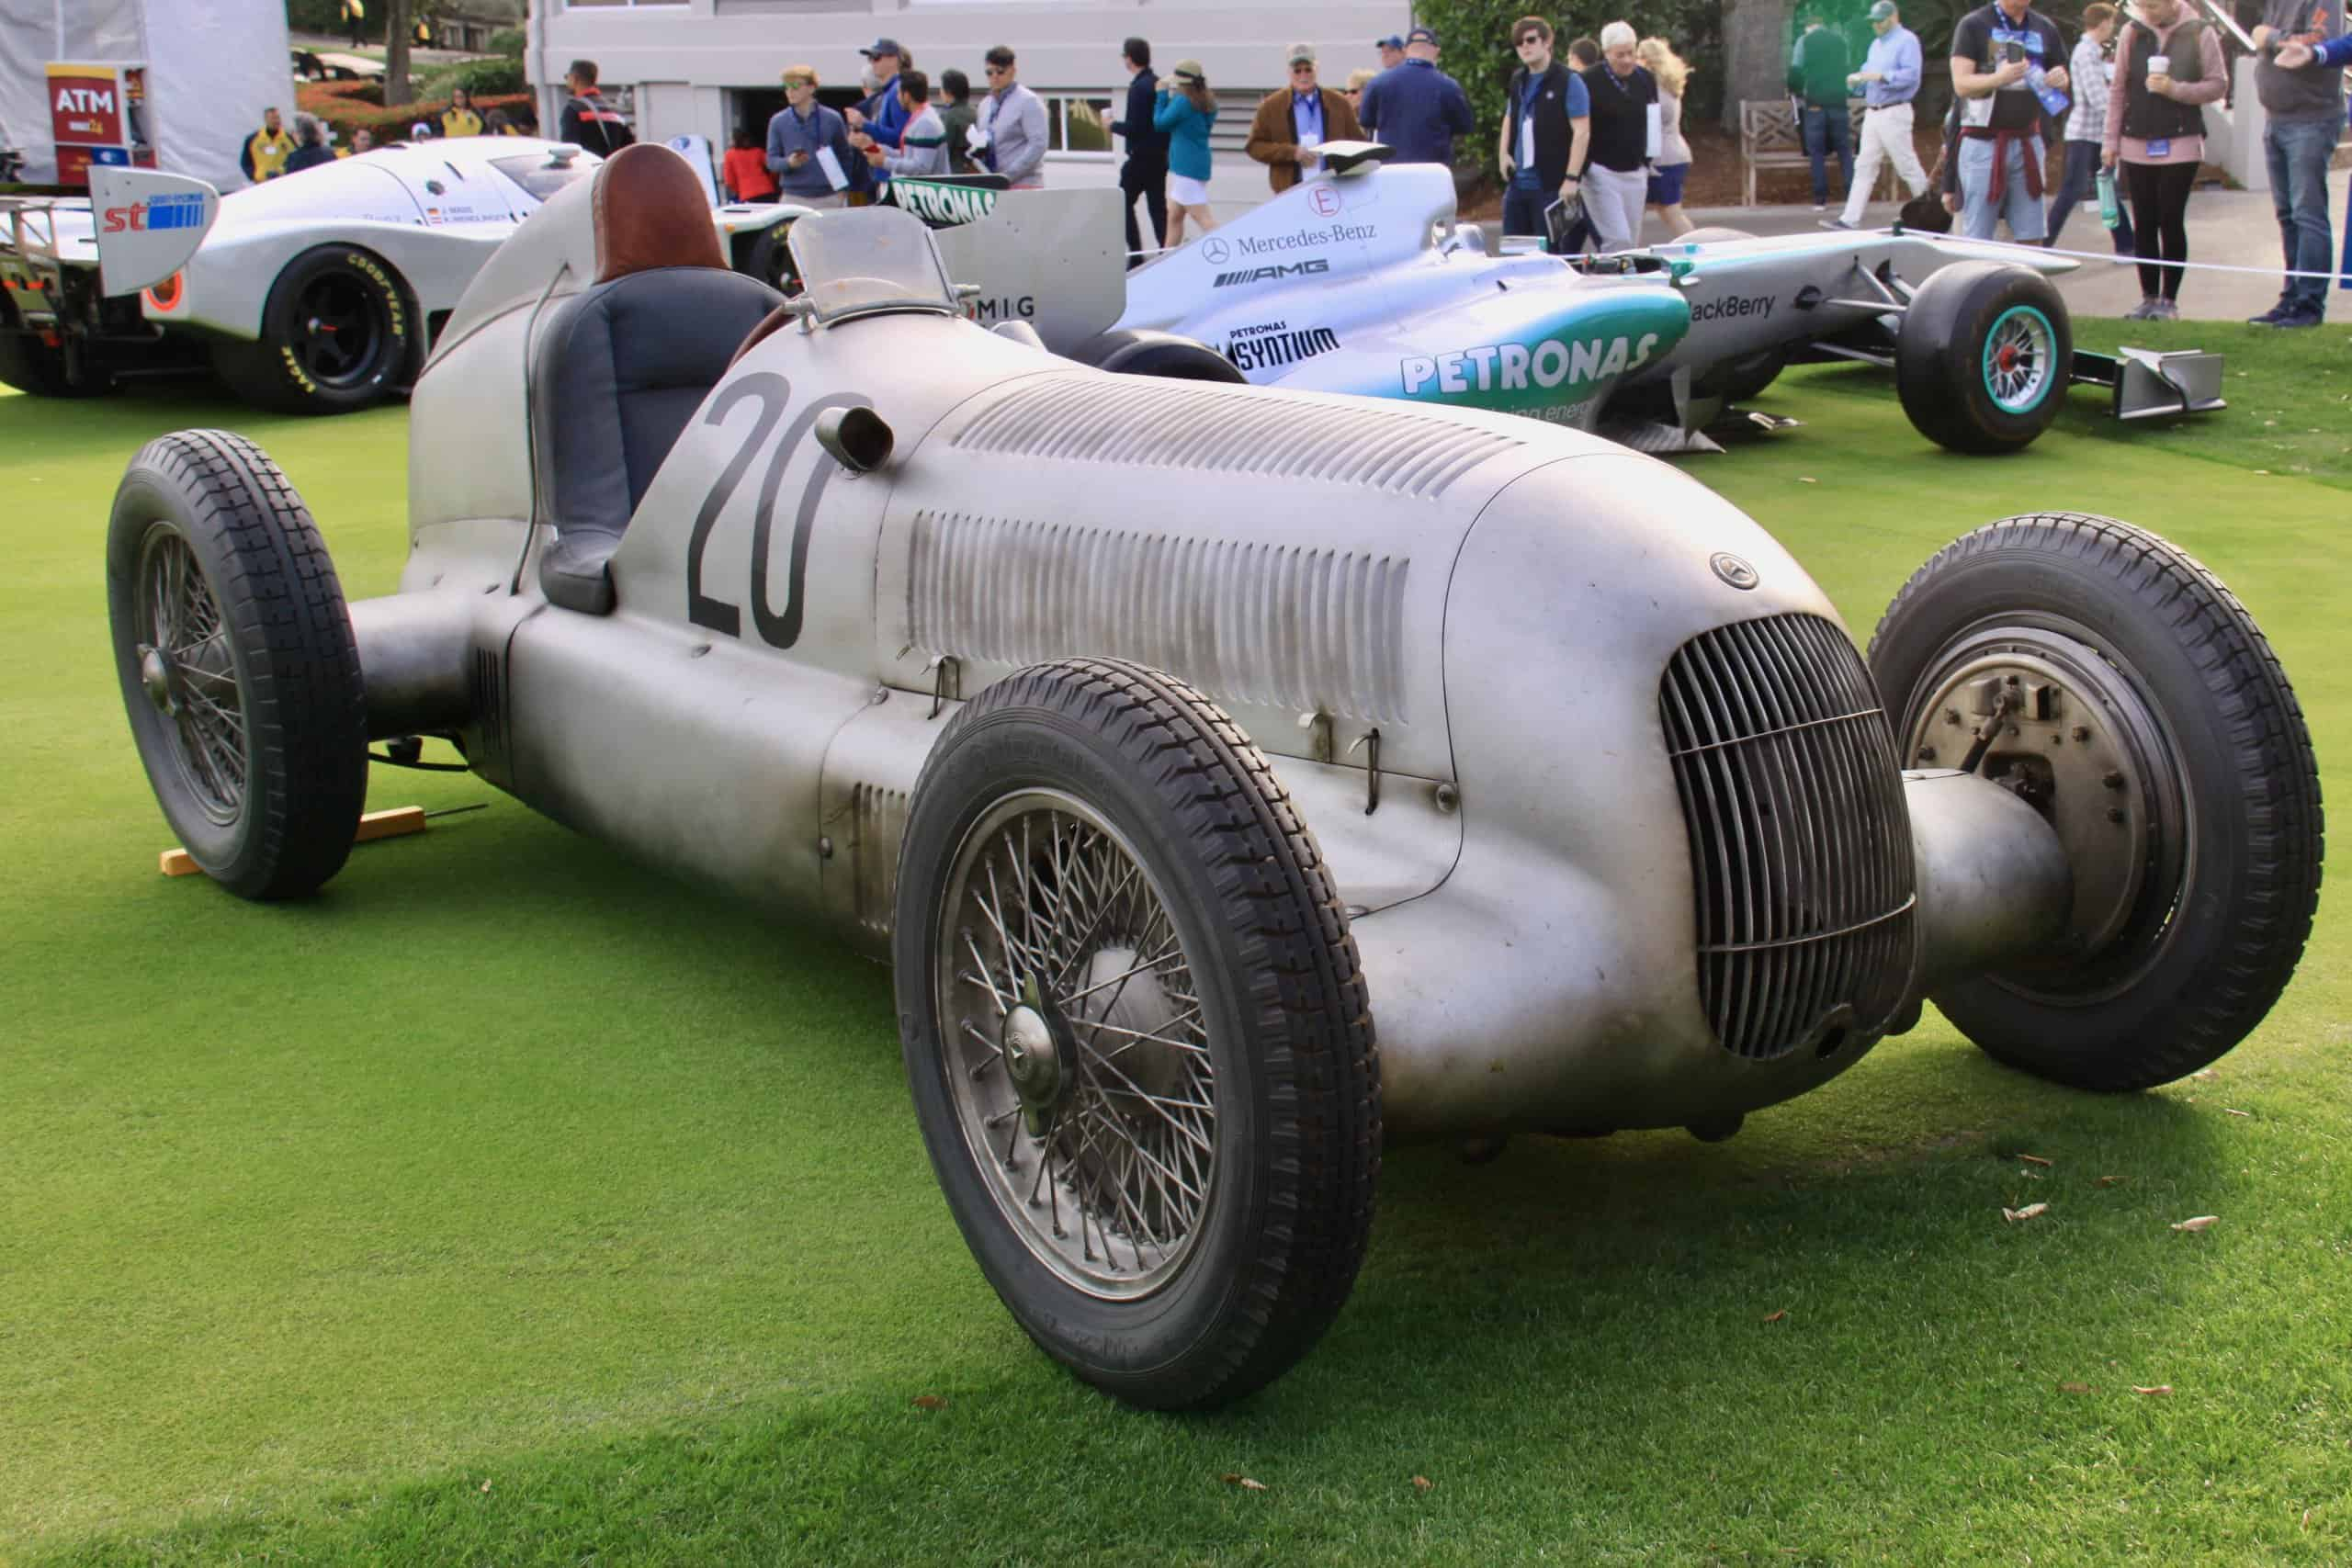 In Year 25, the racing heart of the Amelia Island Concours still beats strong